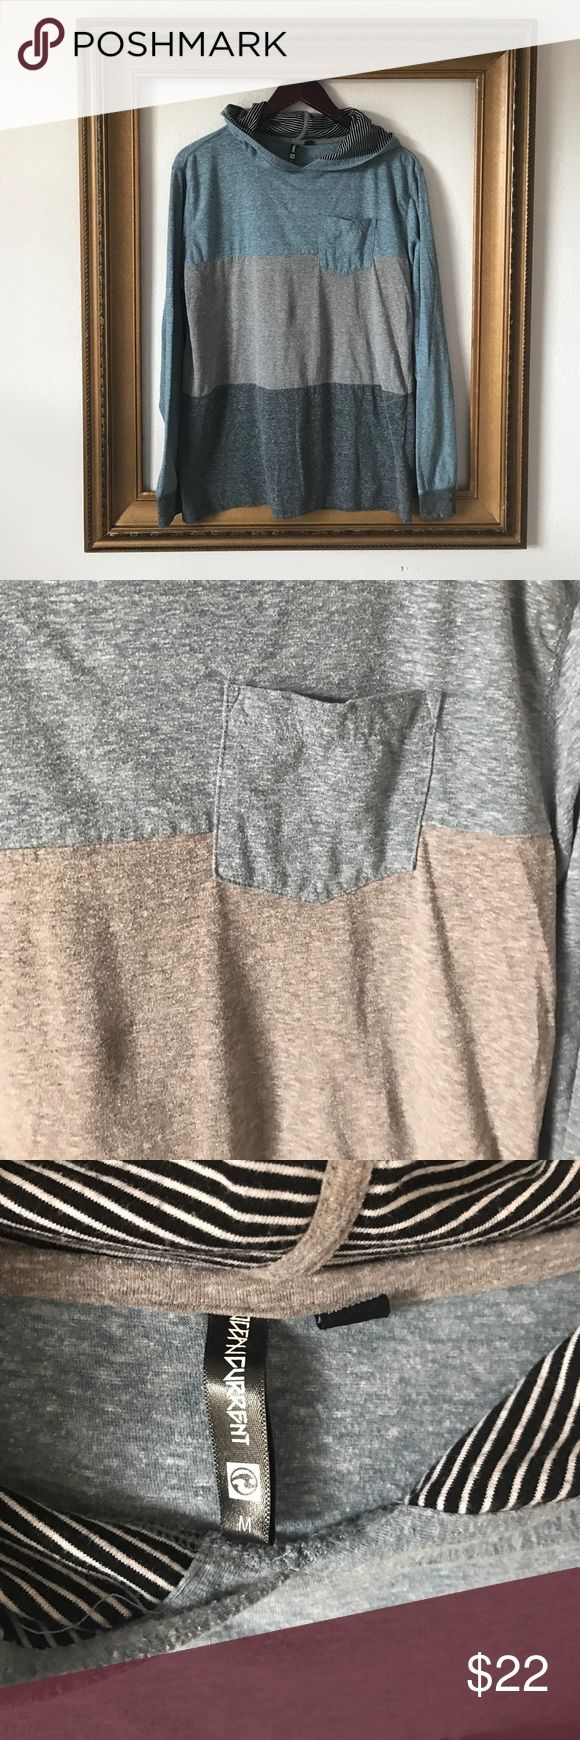 Ocean Current color block gray and blue hoodie, M Gently used. Soft. Lightweight. Comfy casual. Ocean Current Shirts Sweatshirts & Hoodies